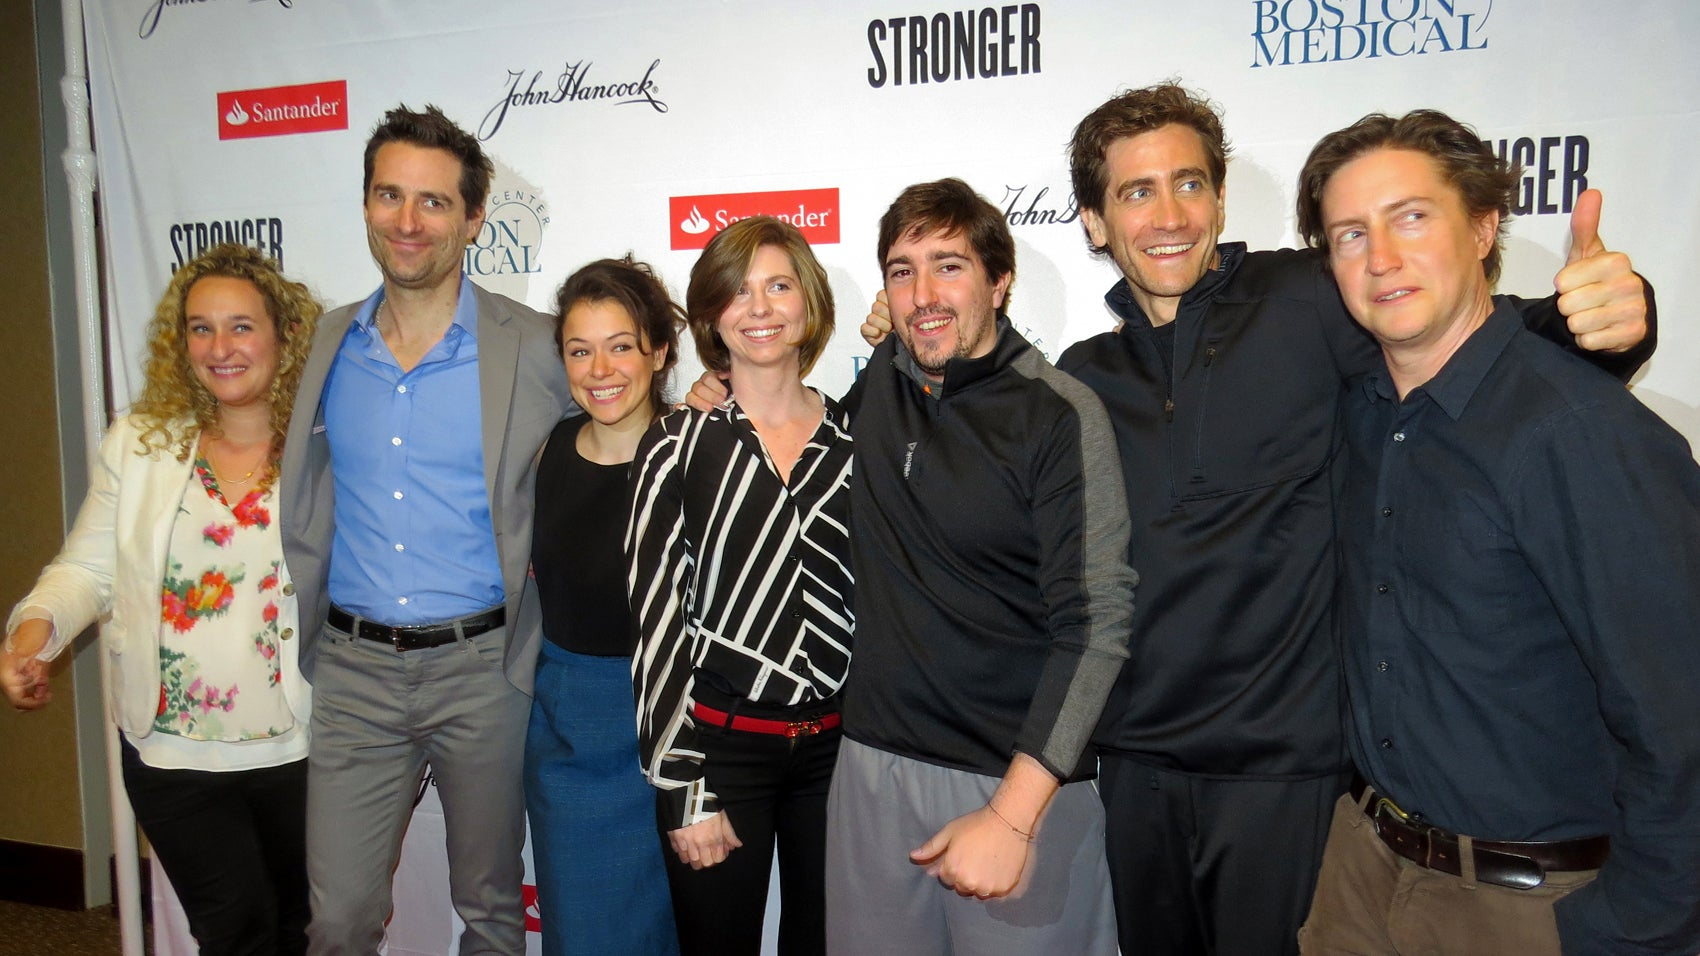 Cast and crew of Stronger pose on the red carpet before BMC's 2016 Marathon pasta dinner.